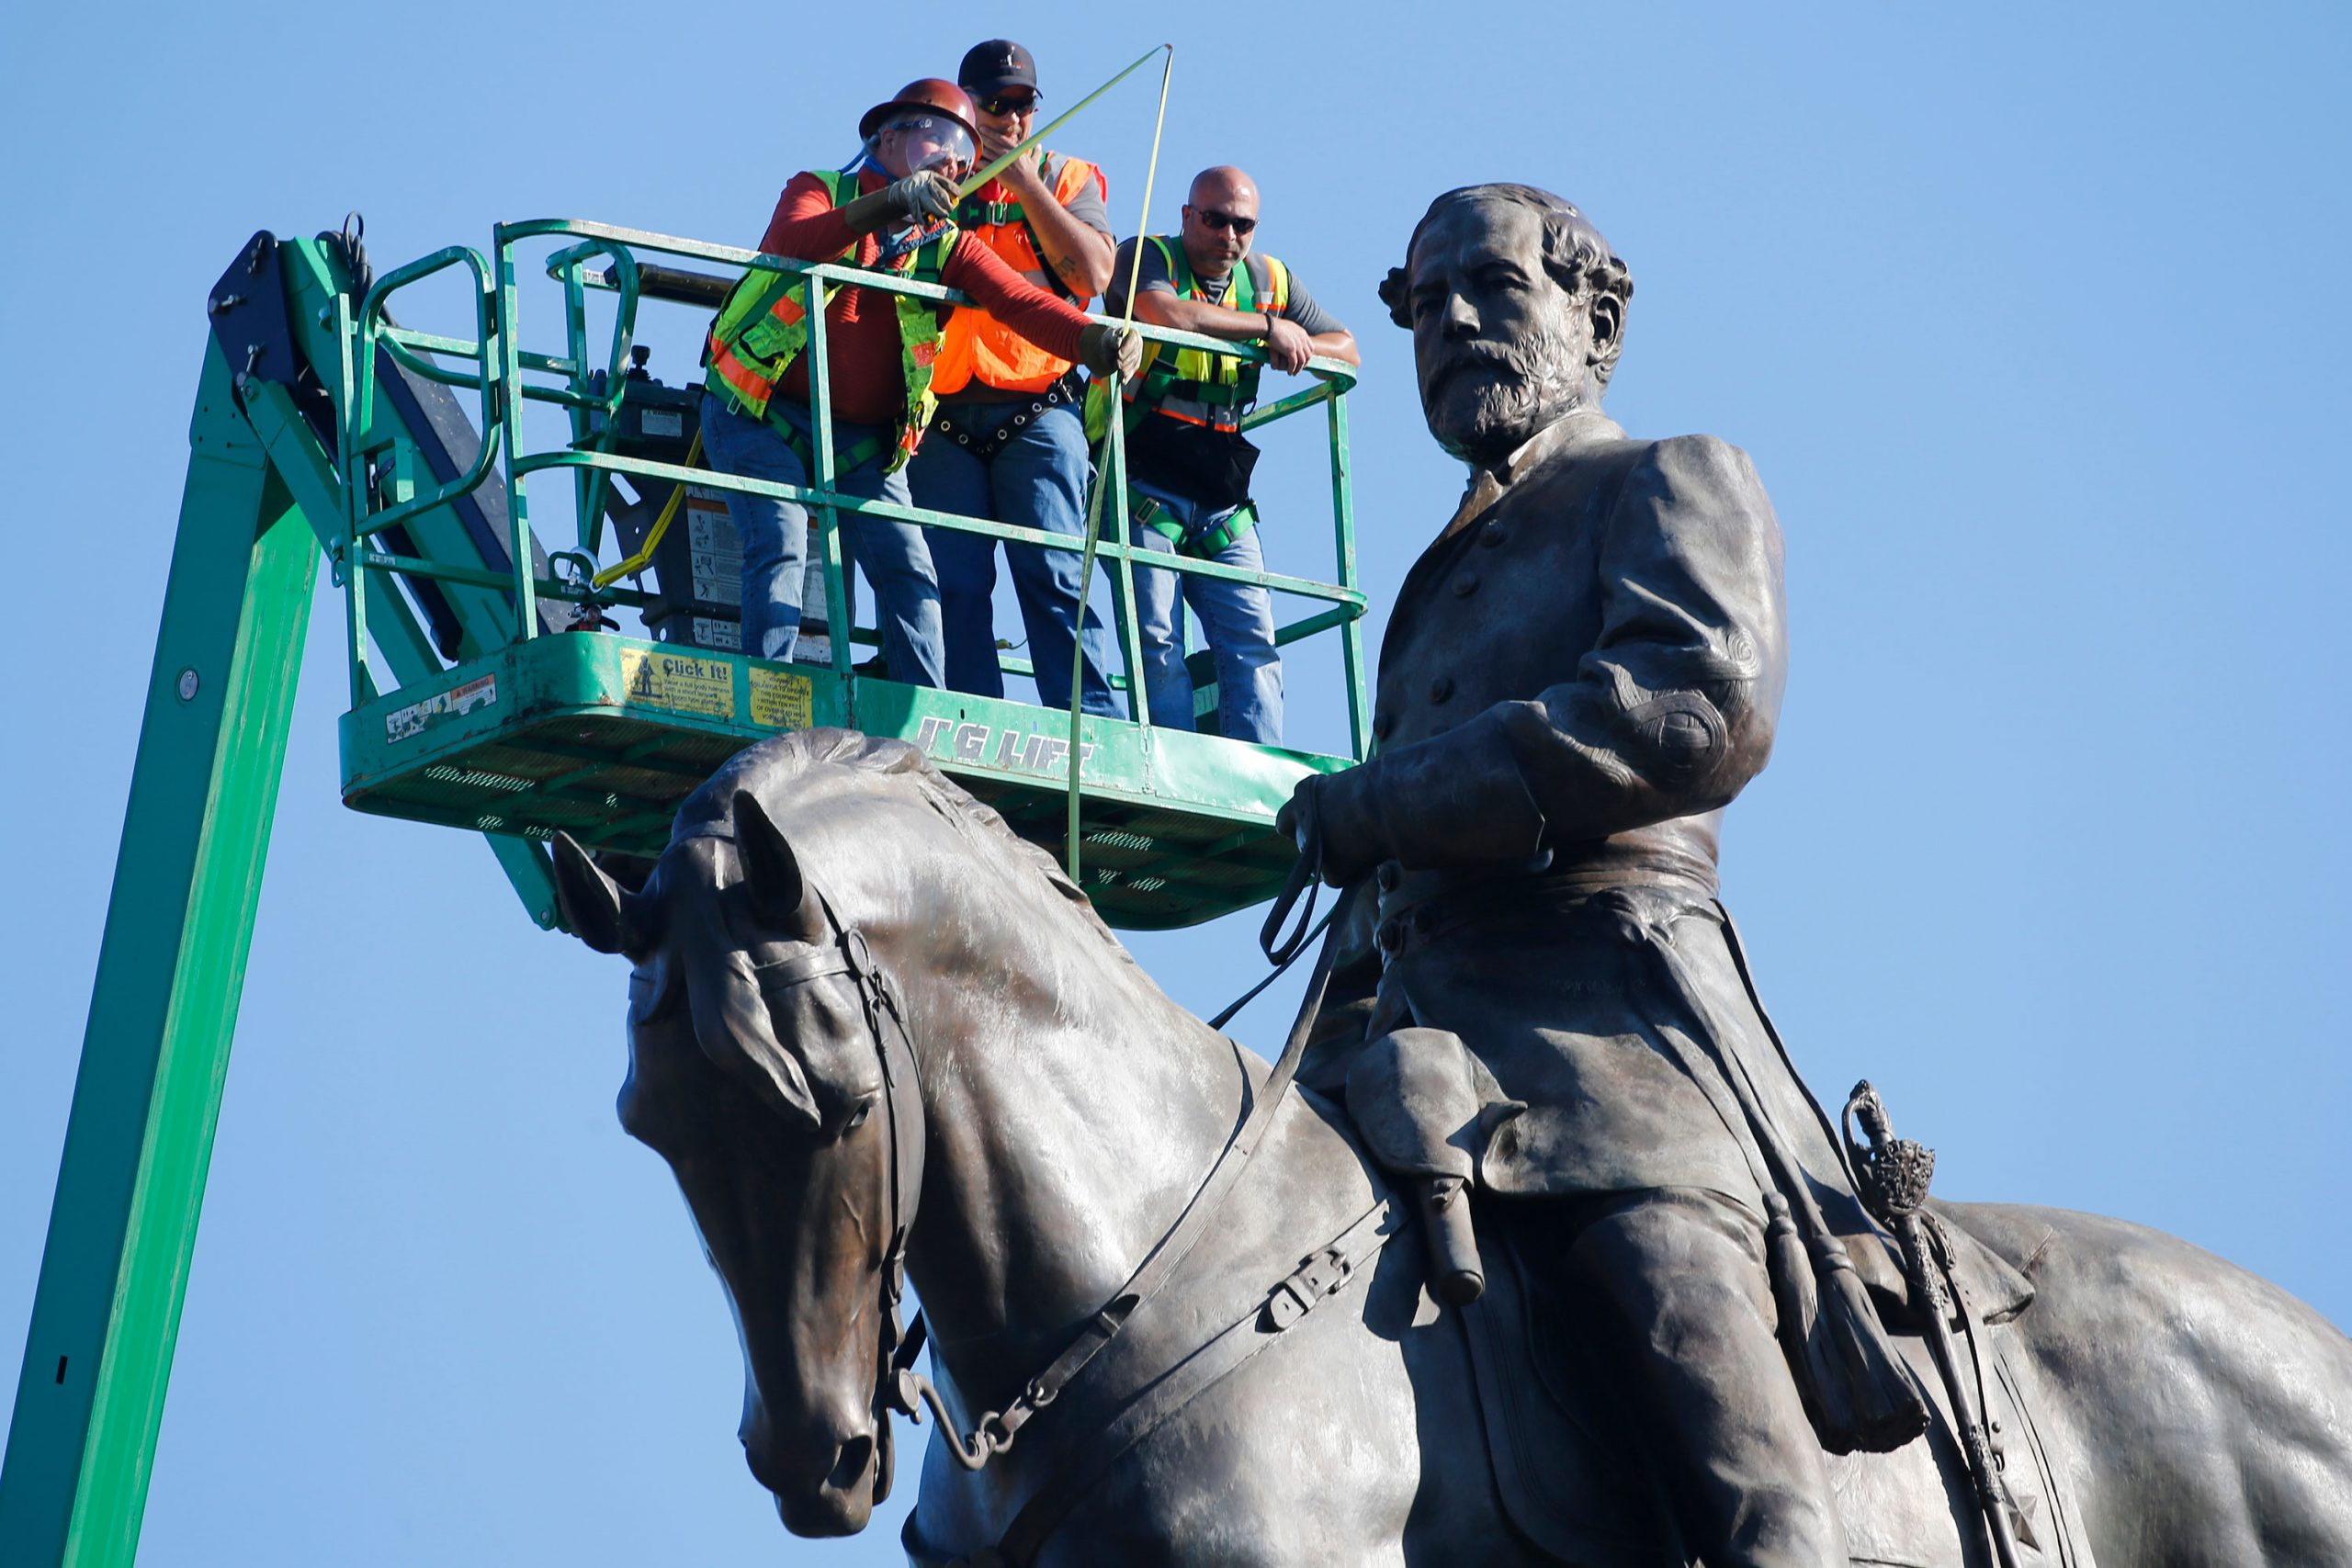 An inspection crew from the Virginia Department of General Services takes measurements of the Robert E. Lee statue in Richmond, Virginia, on June 8.